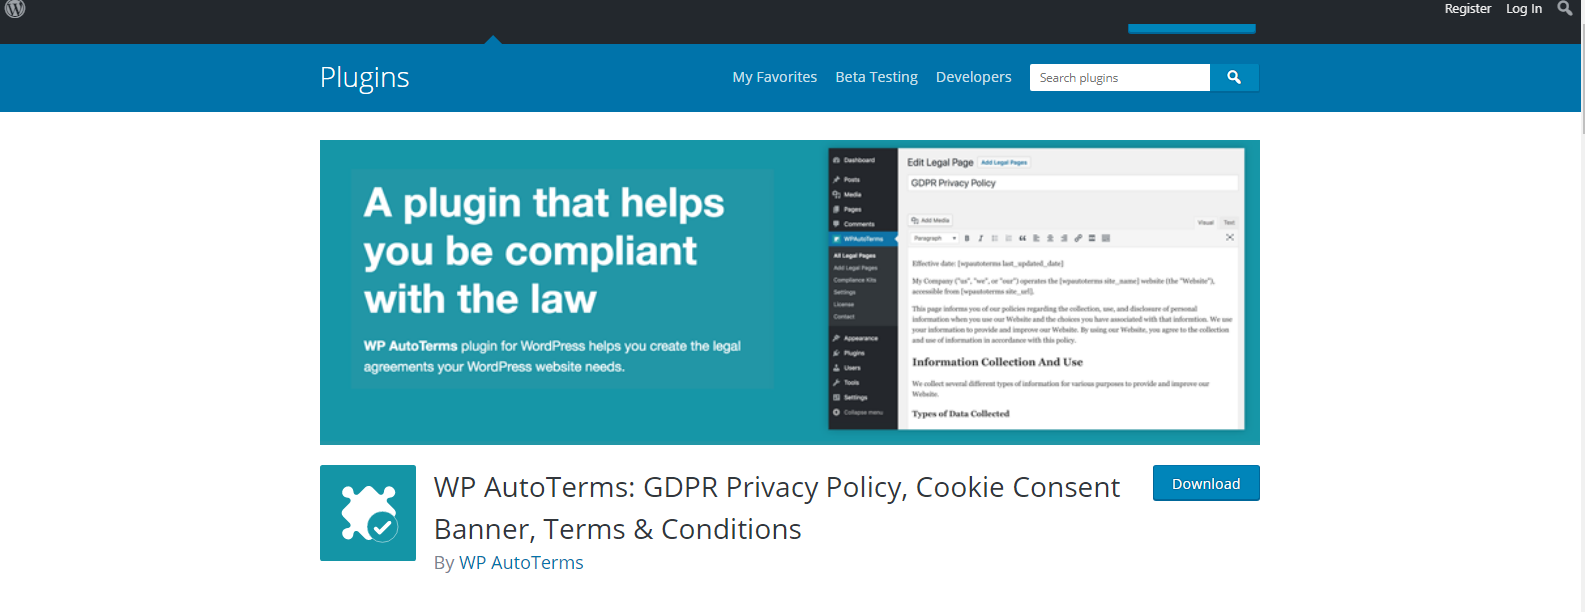 WordPress website privacy policy